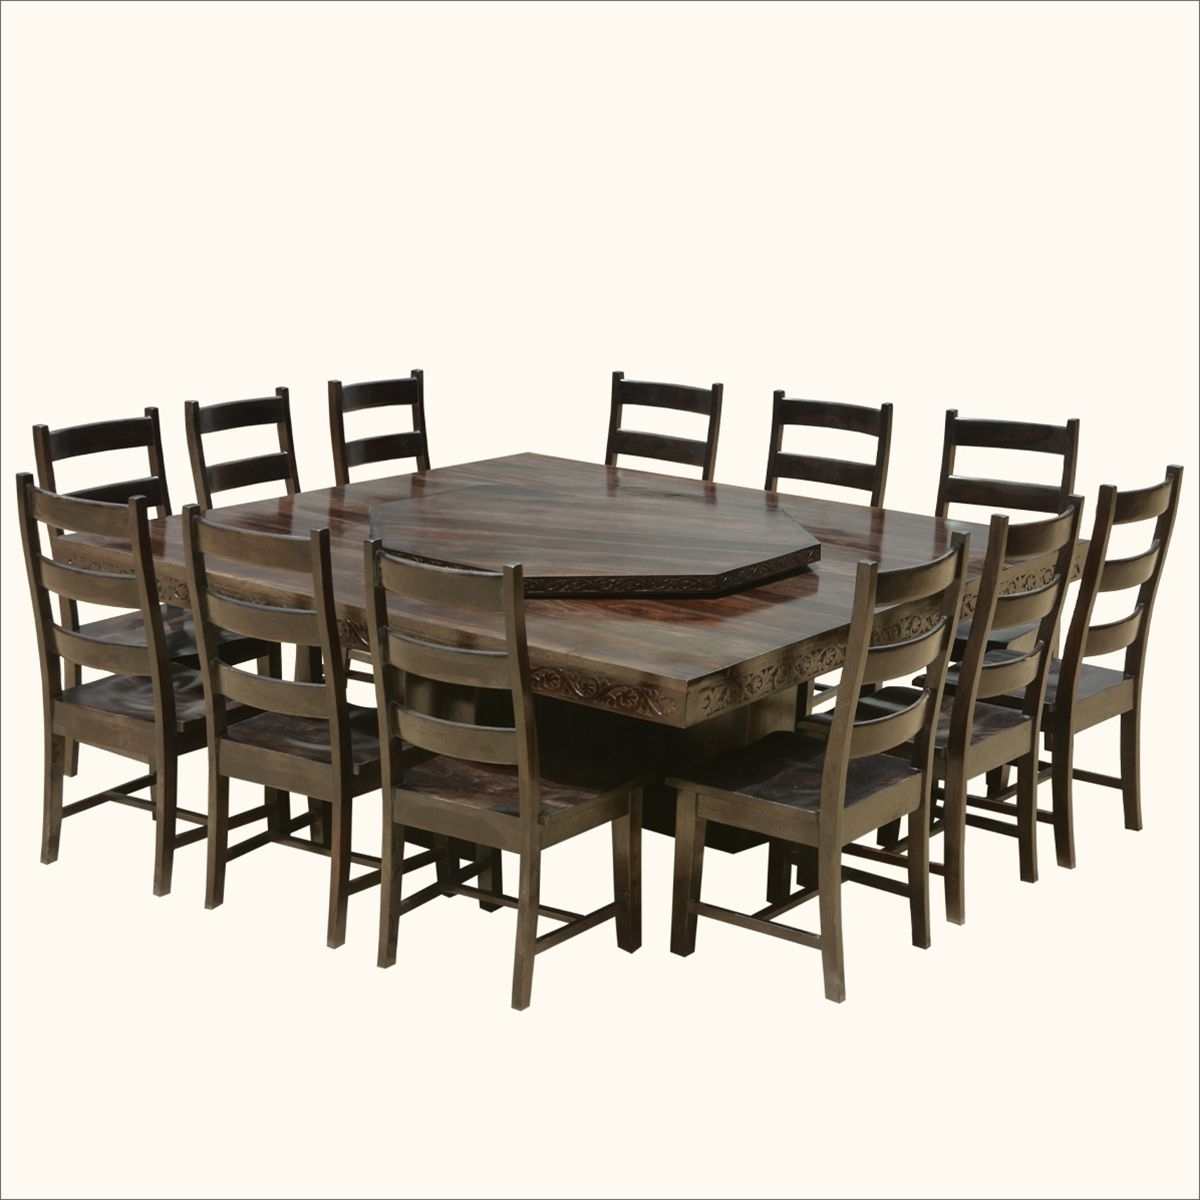 Dining Tables Chairs With Regard To Famous Modern Pioneer Solid Wood Lazy Susan Pedestal Dining Table & Chair (Gallery 16 of 25)